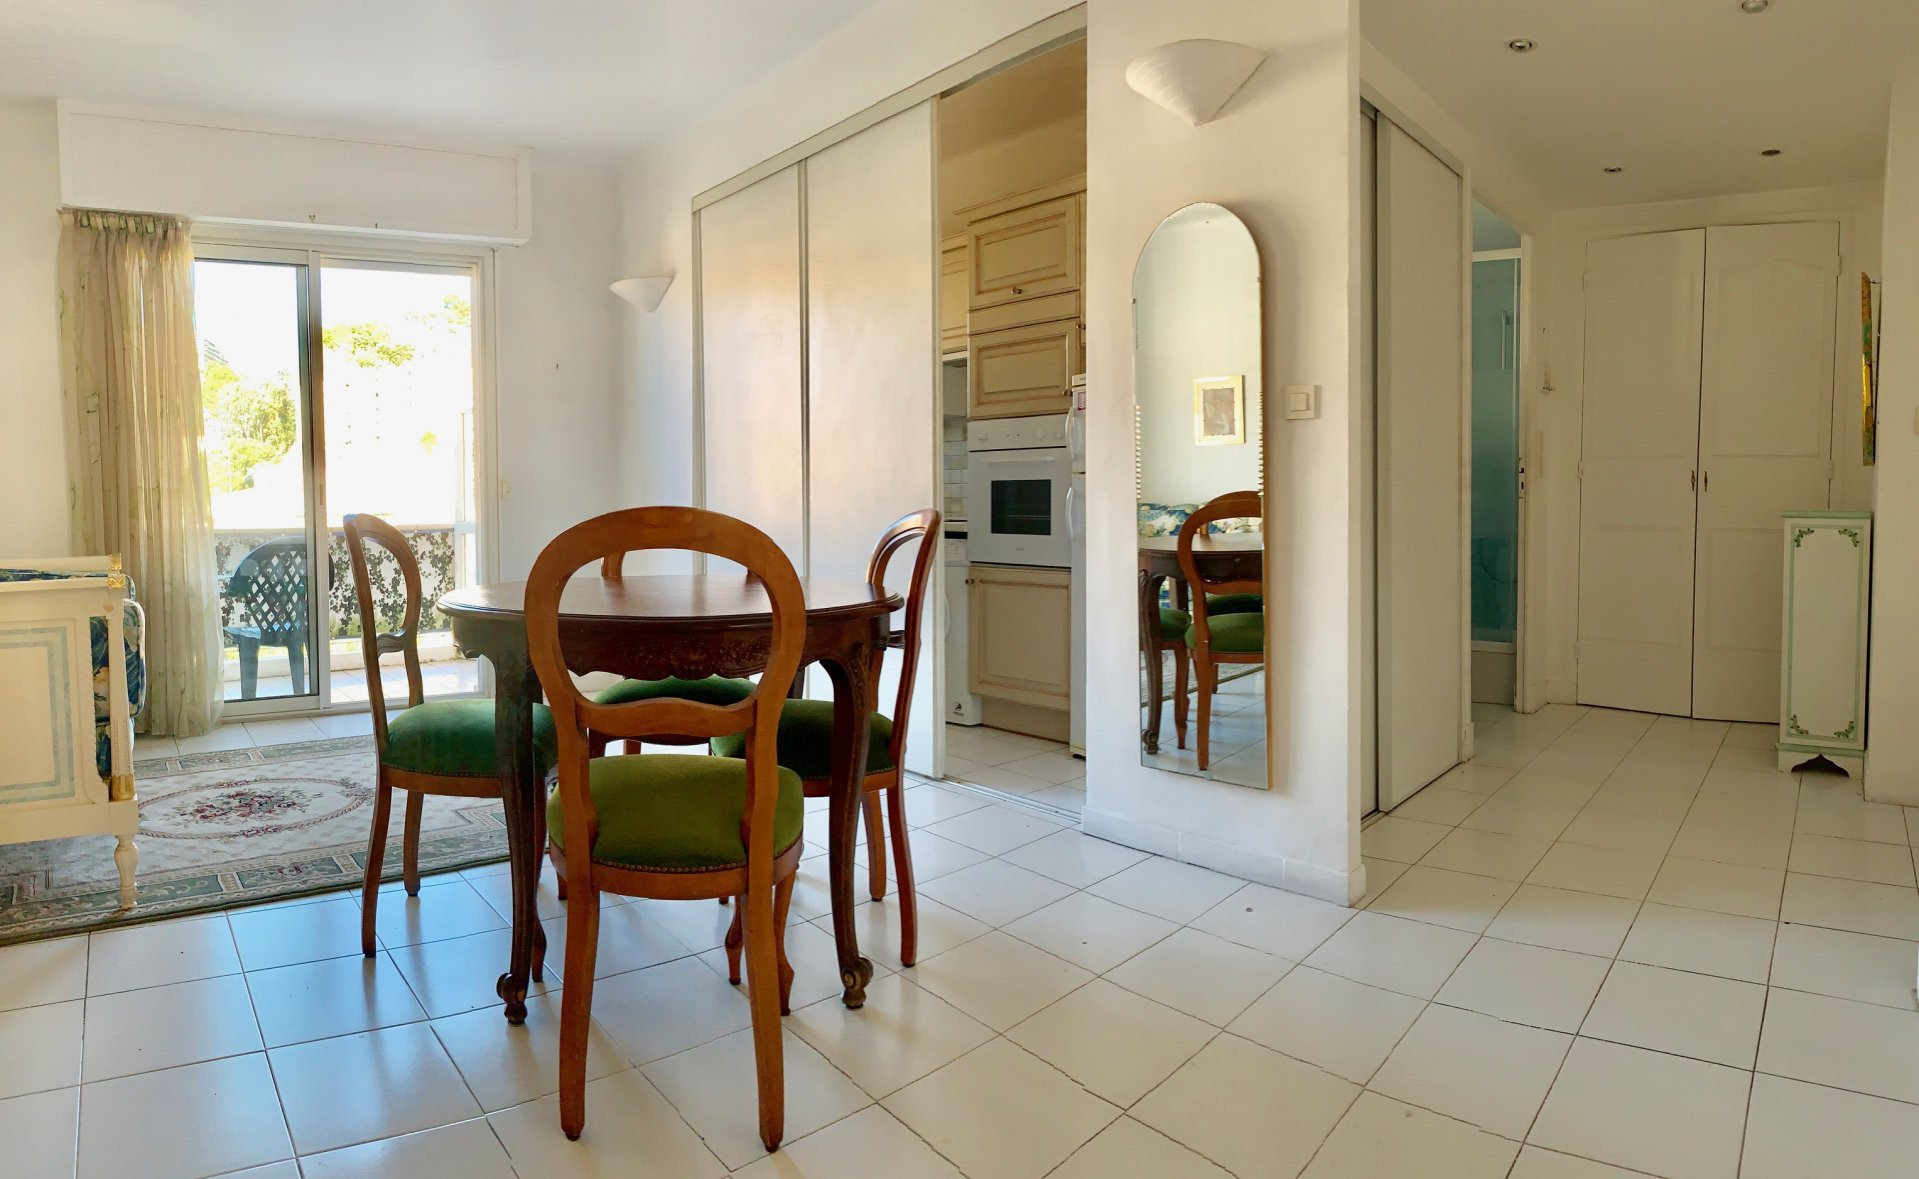 main room, white tiled floor, white walls